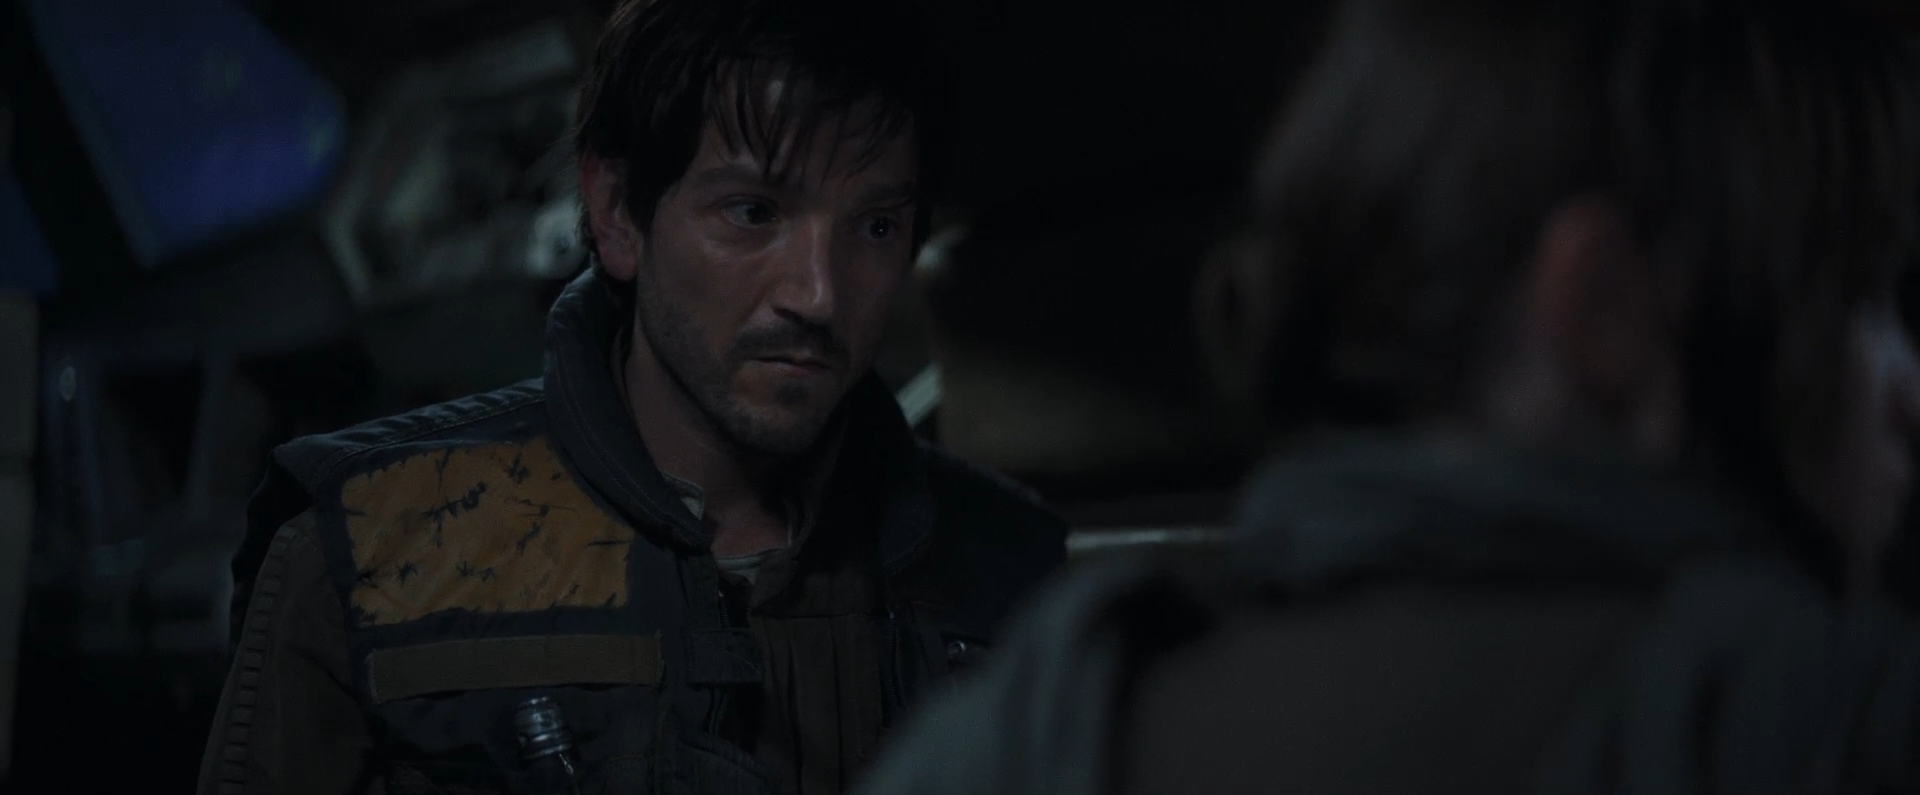 Rogue_One_A_Star_Wars_Story_t00.mp4.00_55_16_17.Still005.png